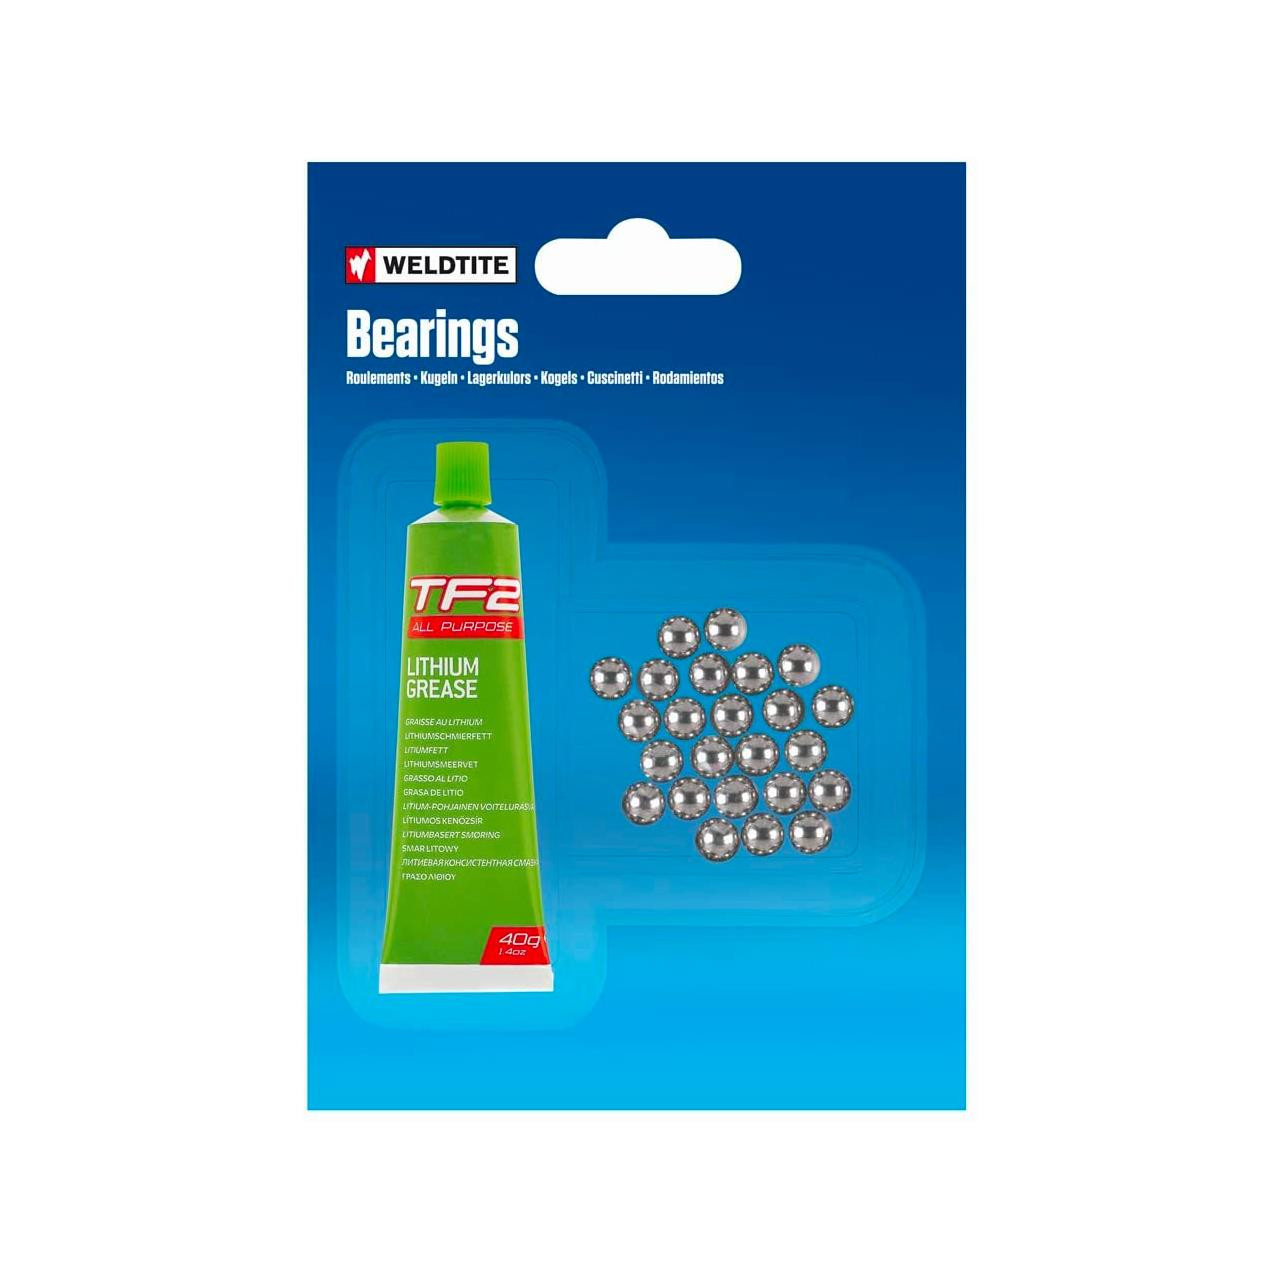 Weldtite Ball Bearings & Grease (7/32)